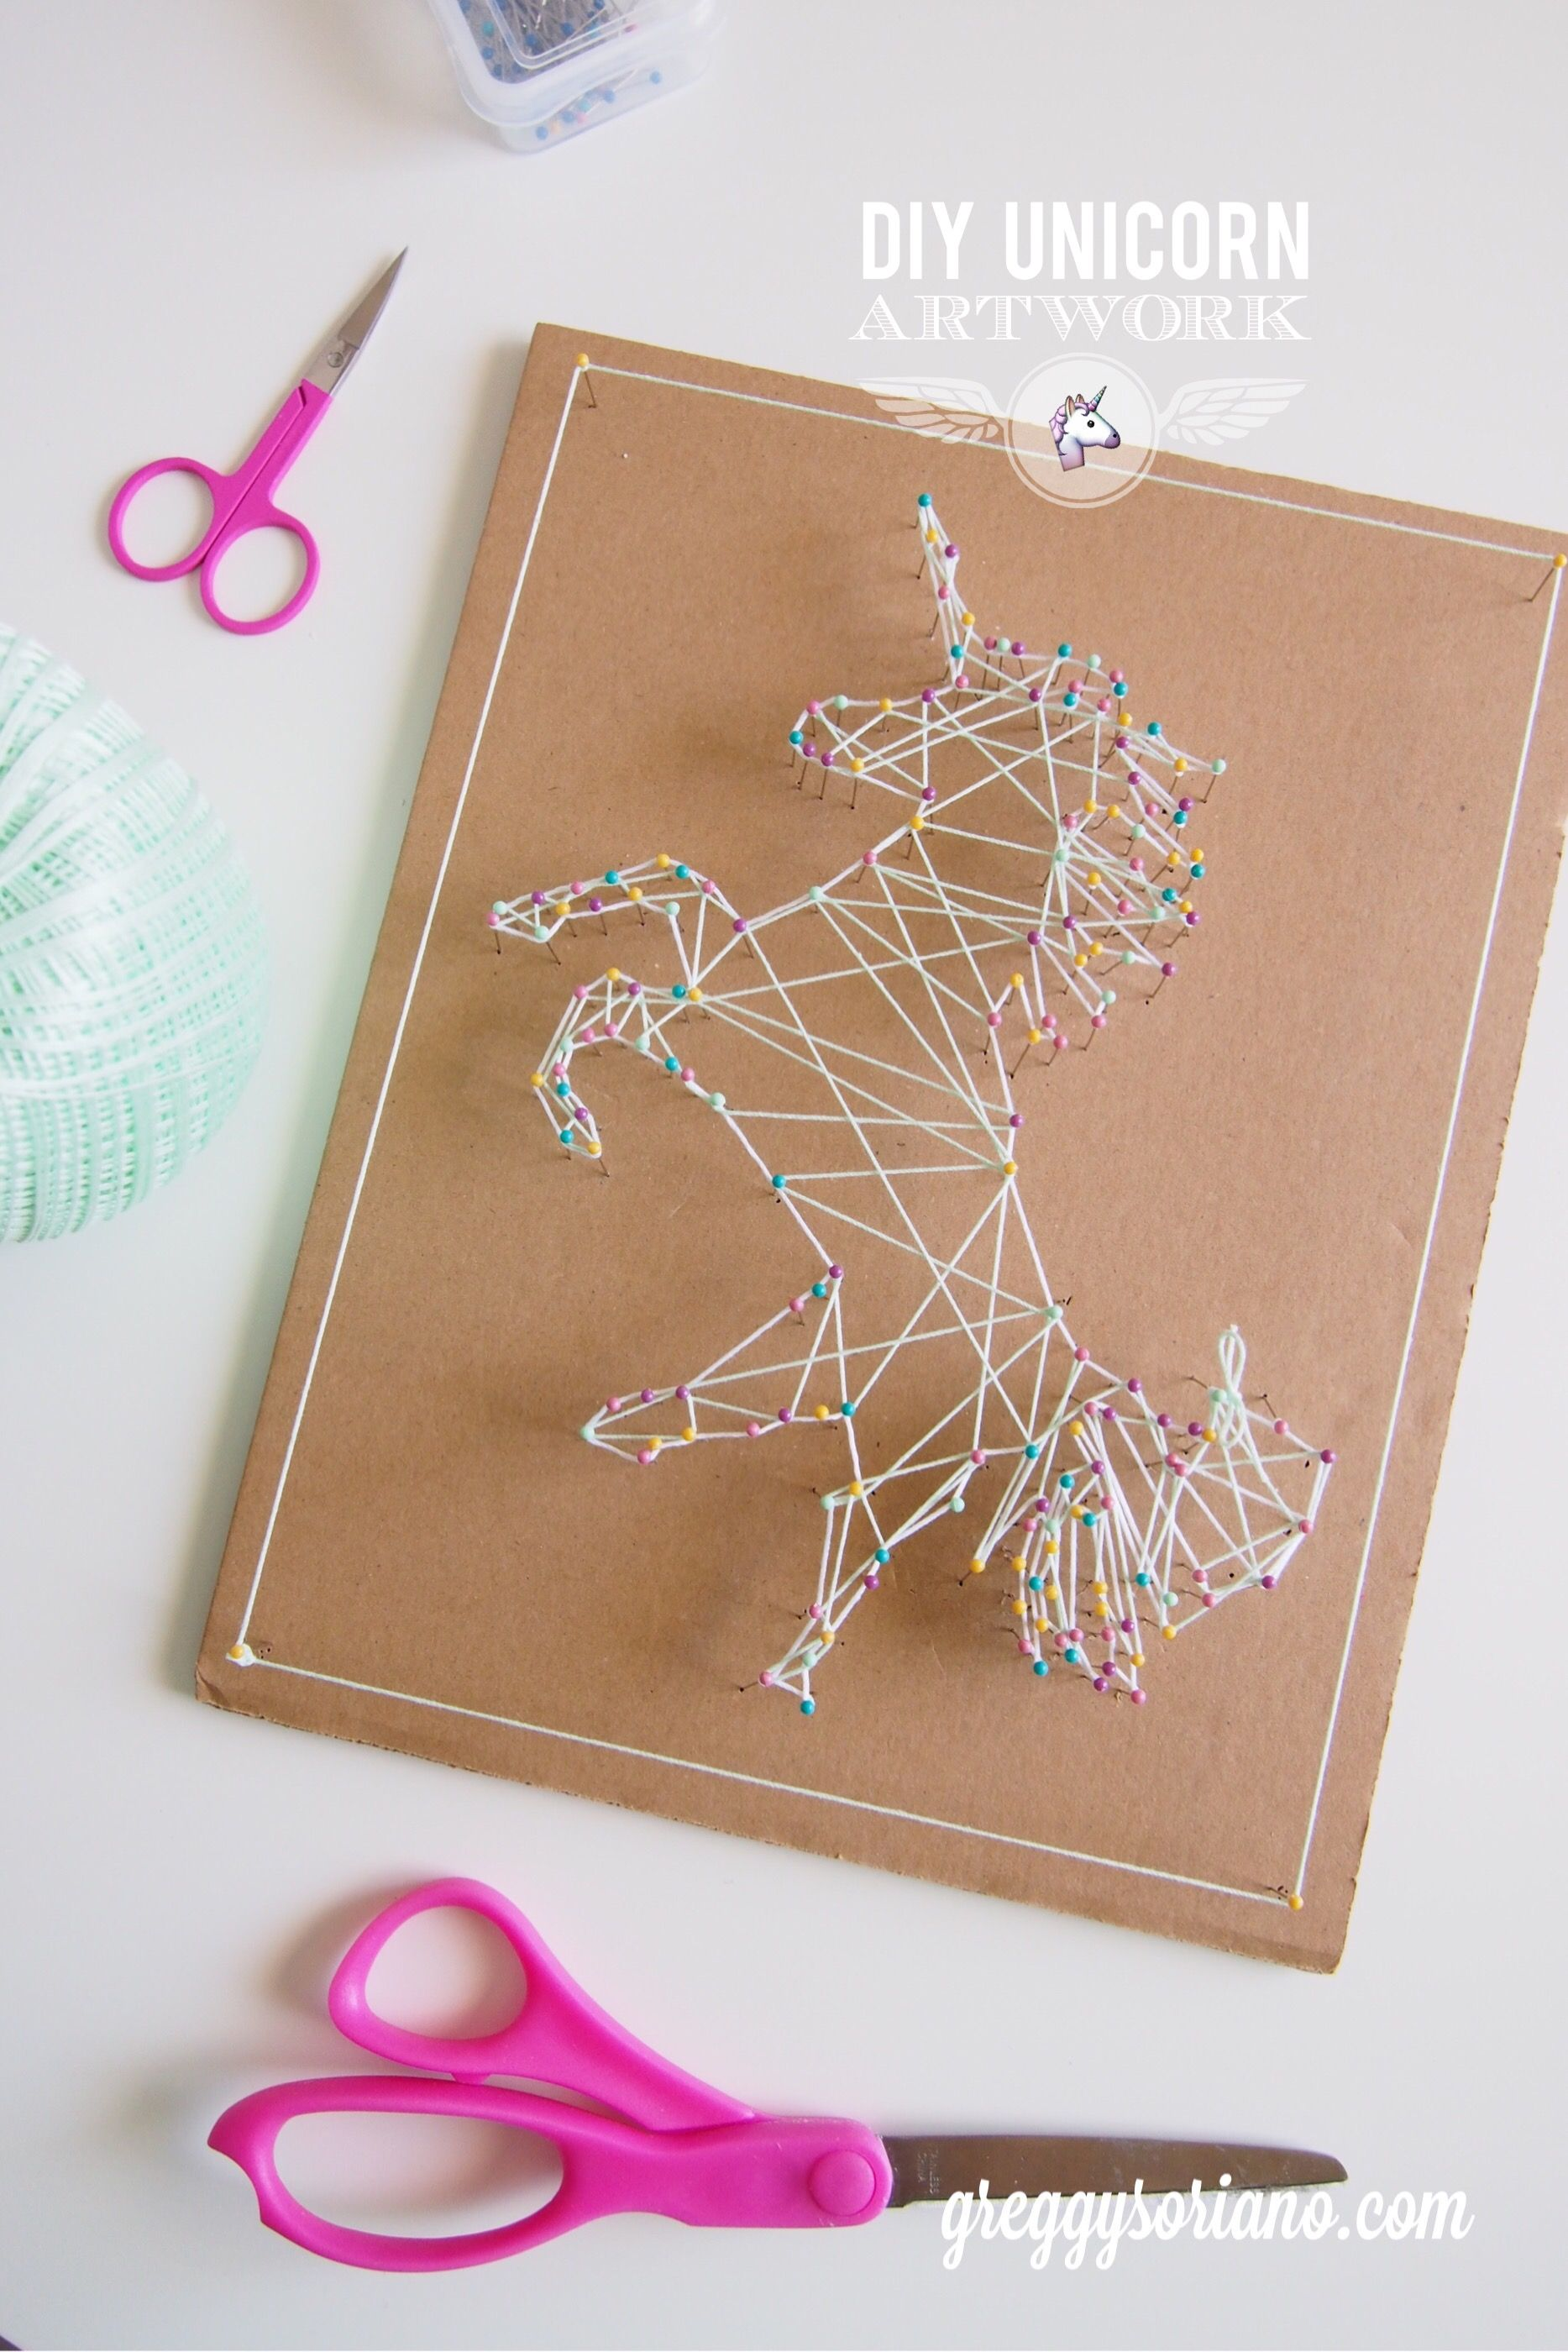 DIY Unicorn Artwork (String Art) - cross Stitch | Pinterest ...